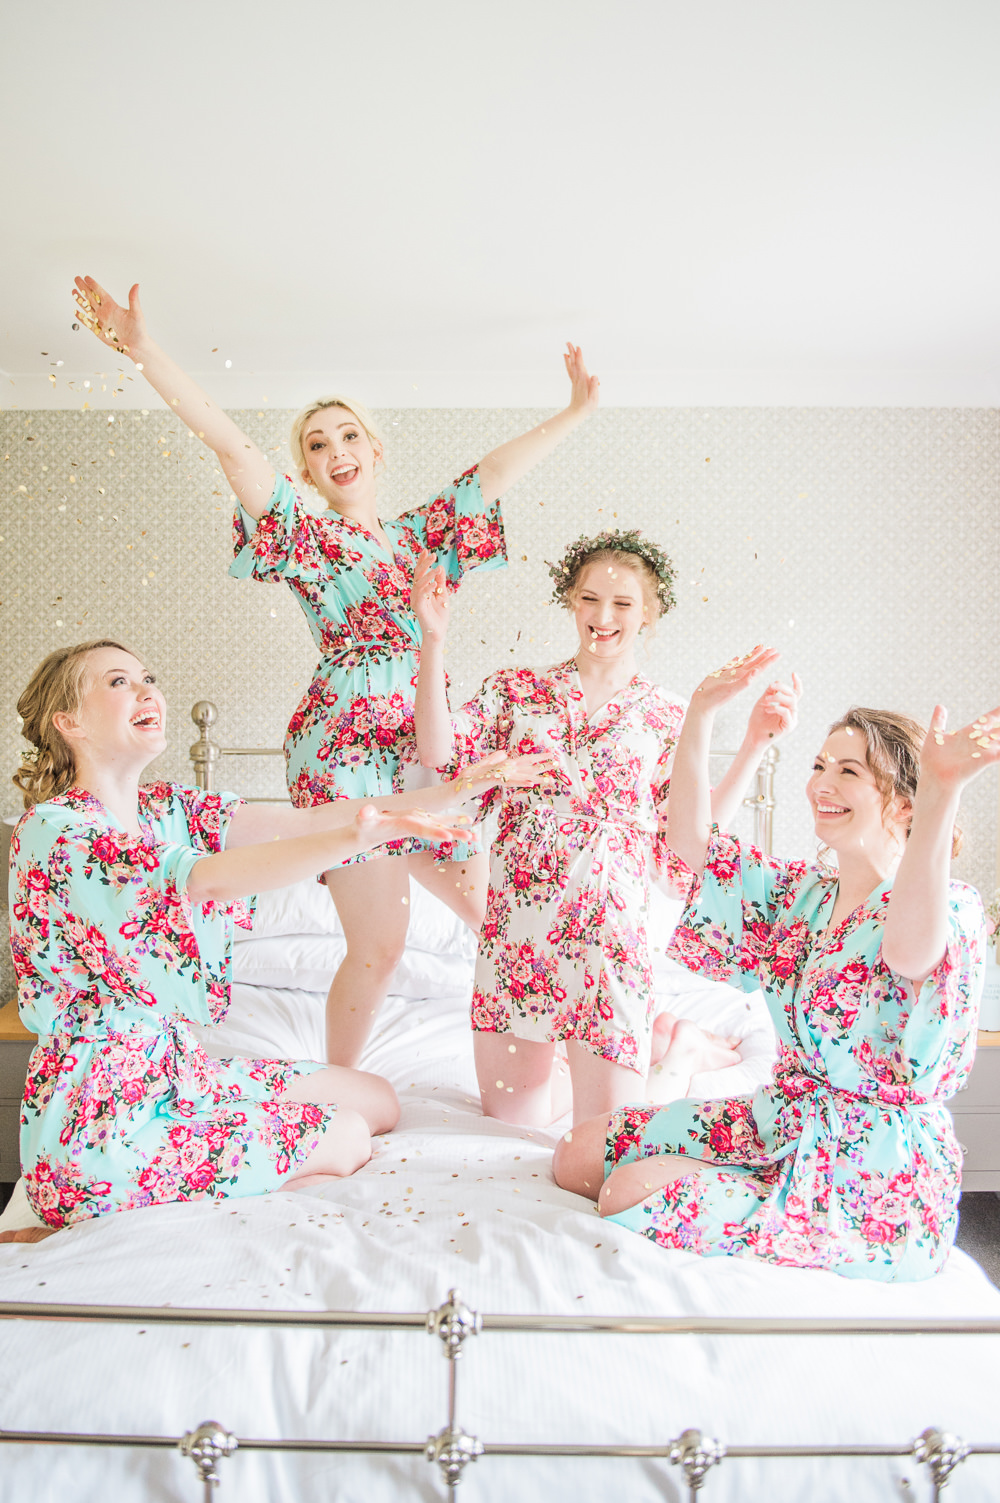 Bride Bridesmaids Dressing Gowns Robes Prep Glitter Confetti Springtime Bridal Shower Ideas Hen Party Laura Jane Photography